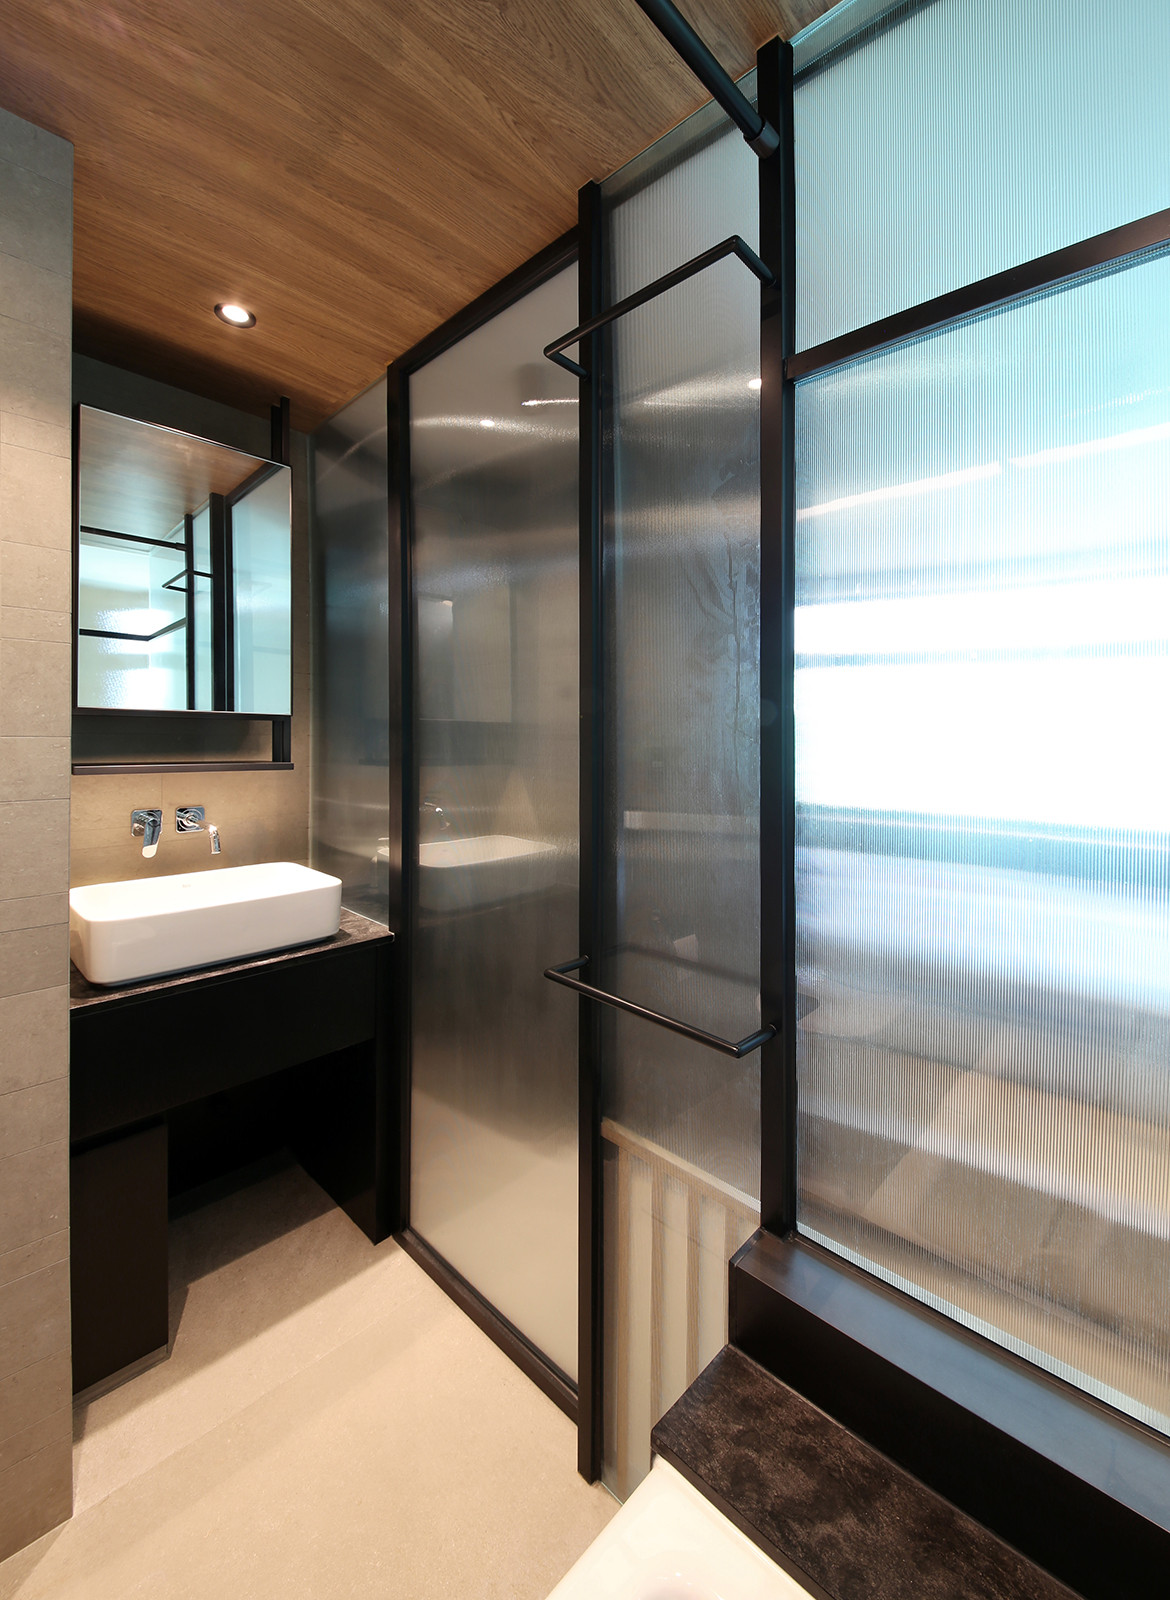 Taikoo Shing Apartment Studio Adjective bathroom screens